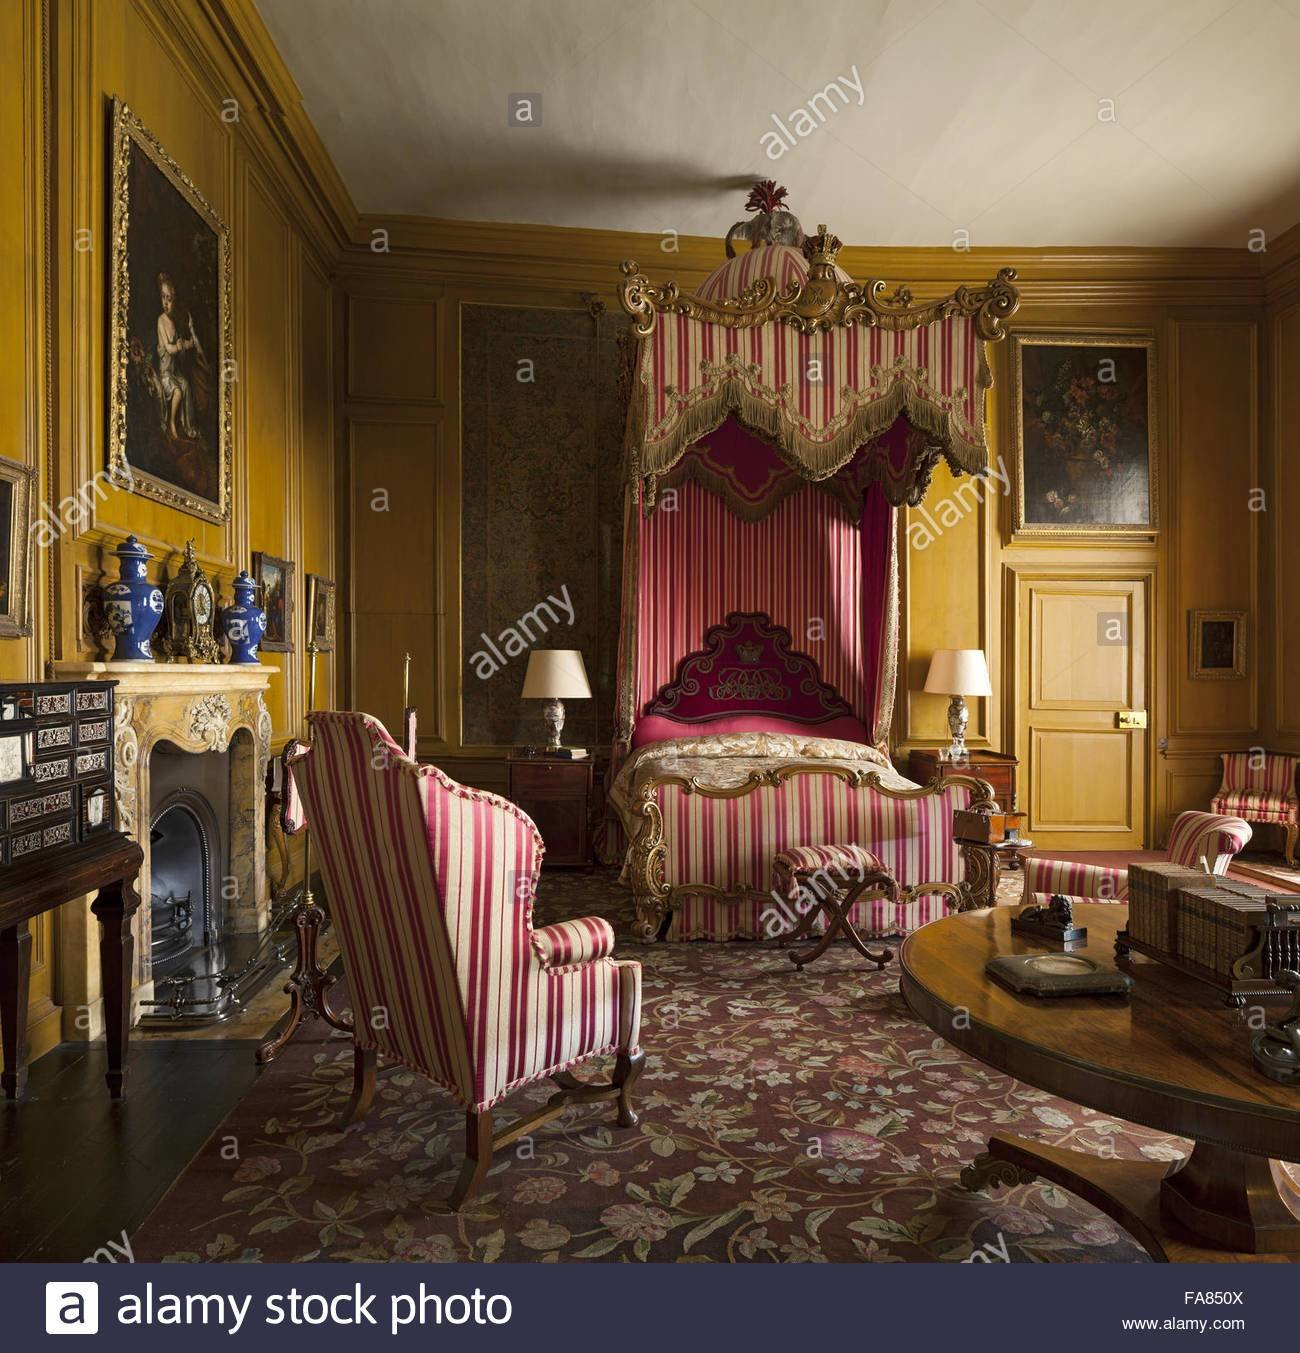 Best The Queen S Bedroom At Belton House Lincolnshire The Room Is Named Stock Photo 92377962 Alamy With Pictures